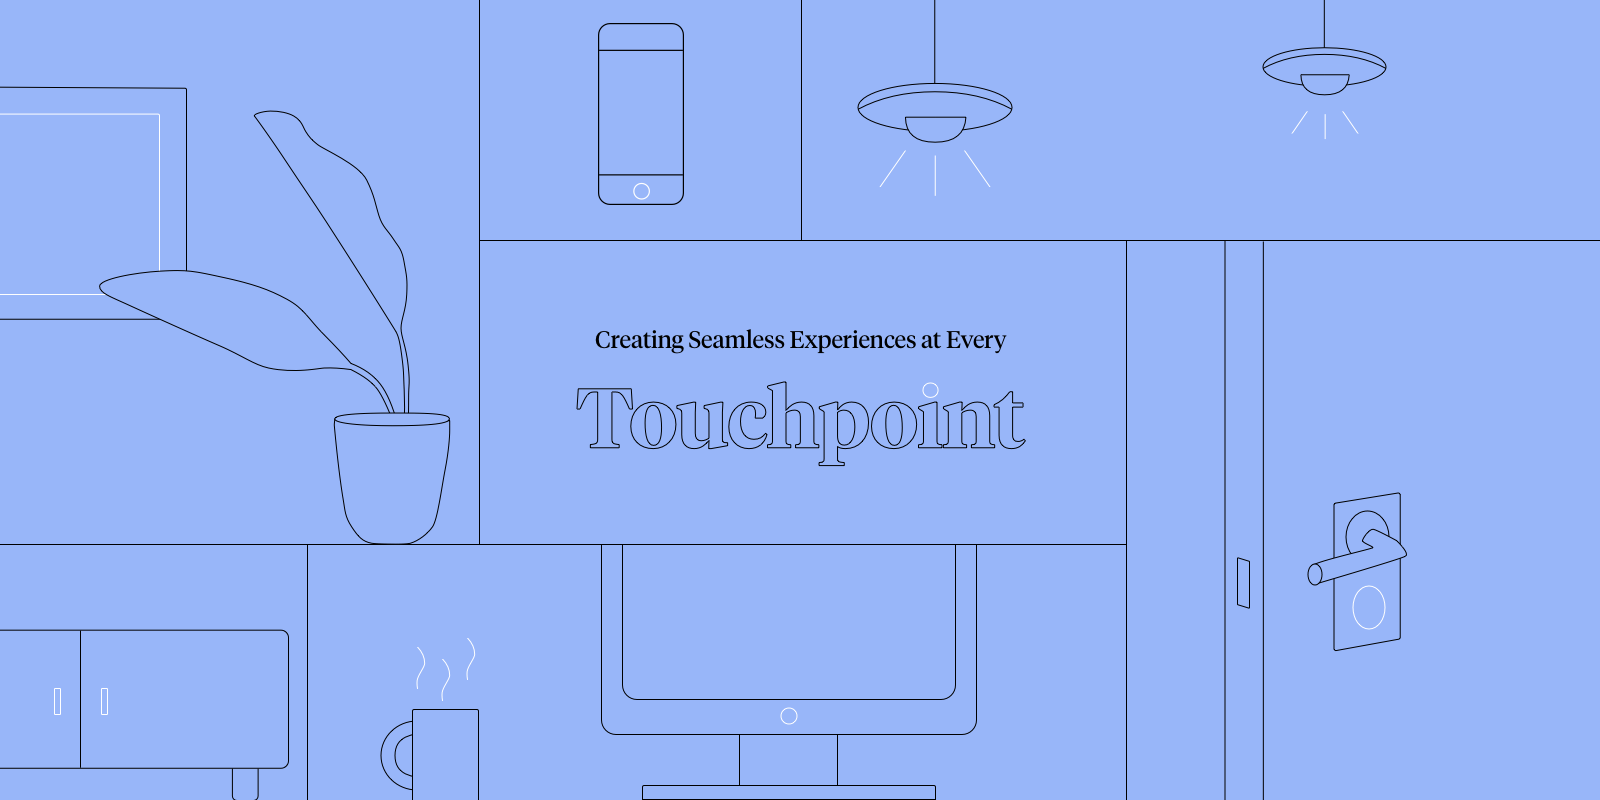 Creating seamless experiences at every touchpoint